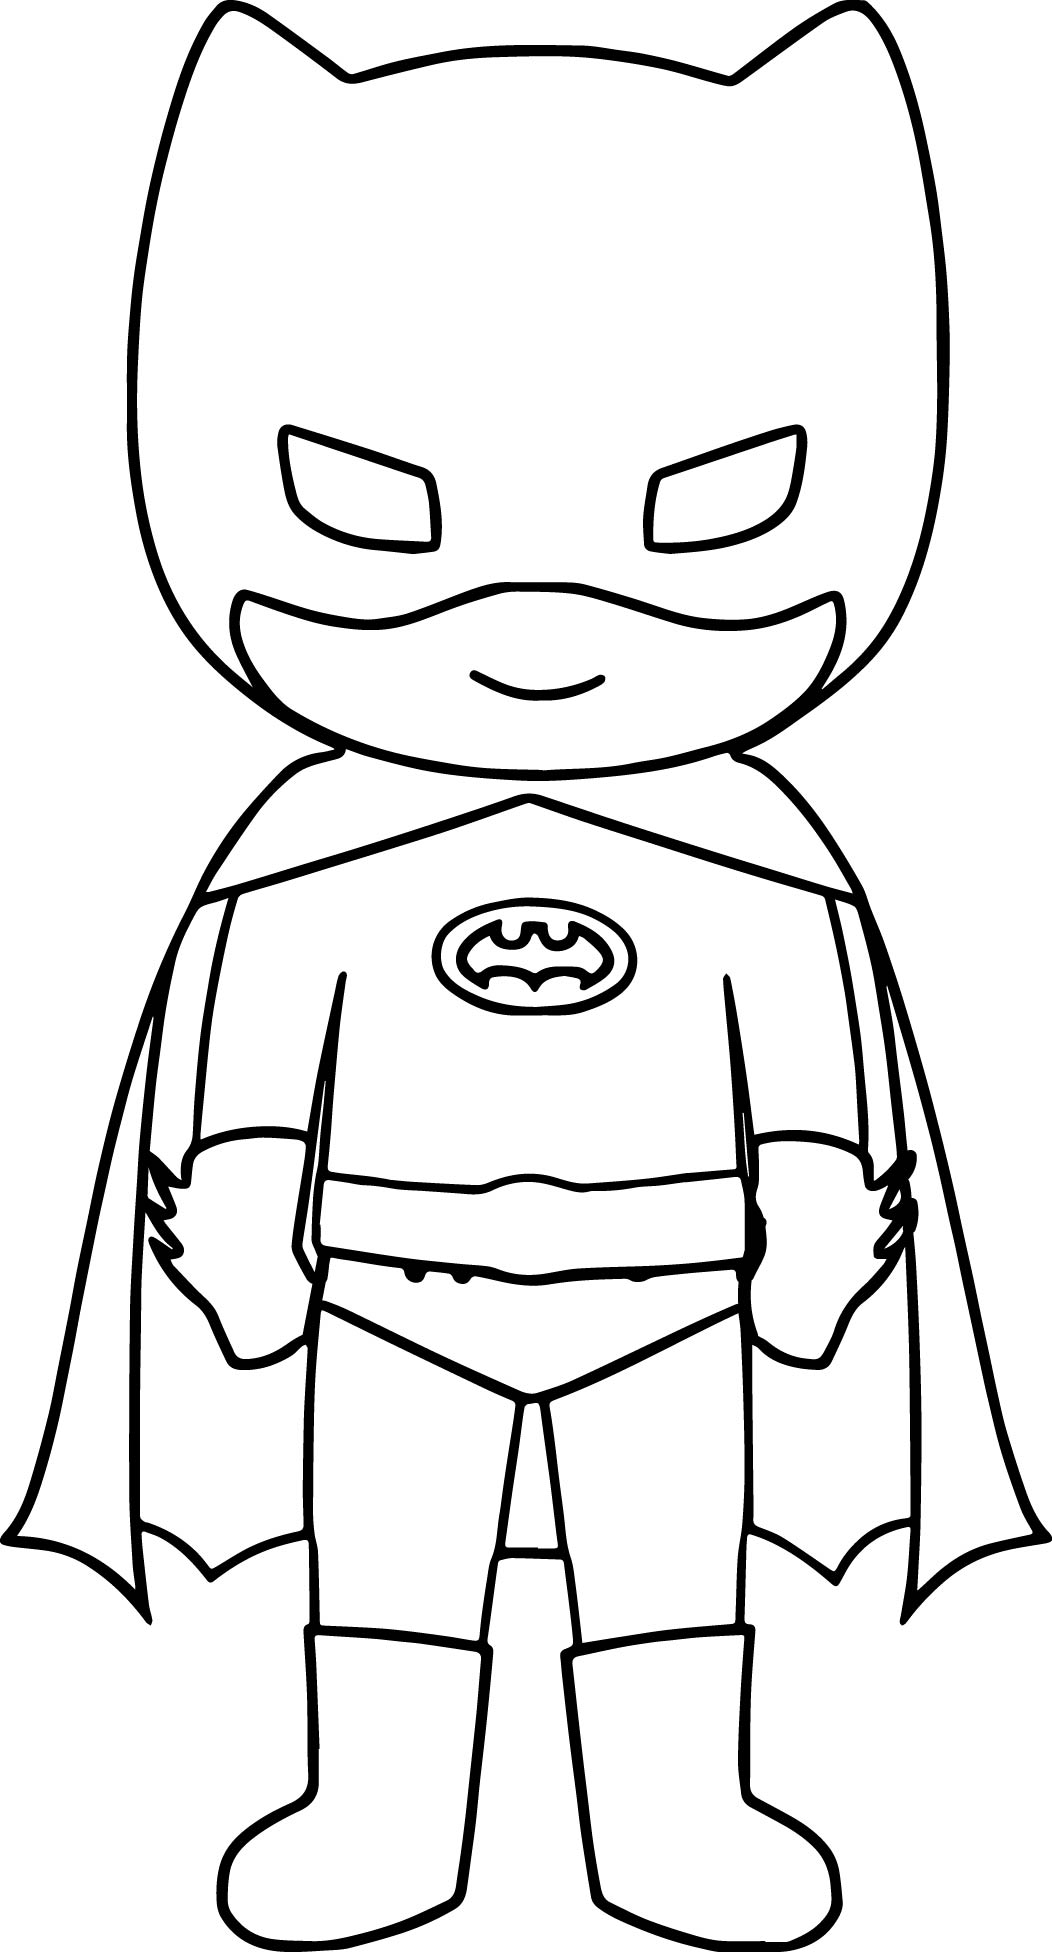 Bat Superhero Kids Coloring Page